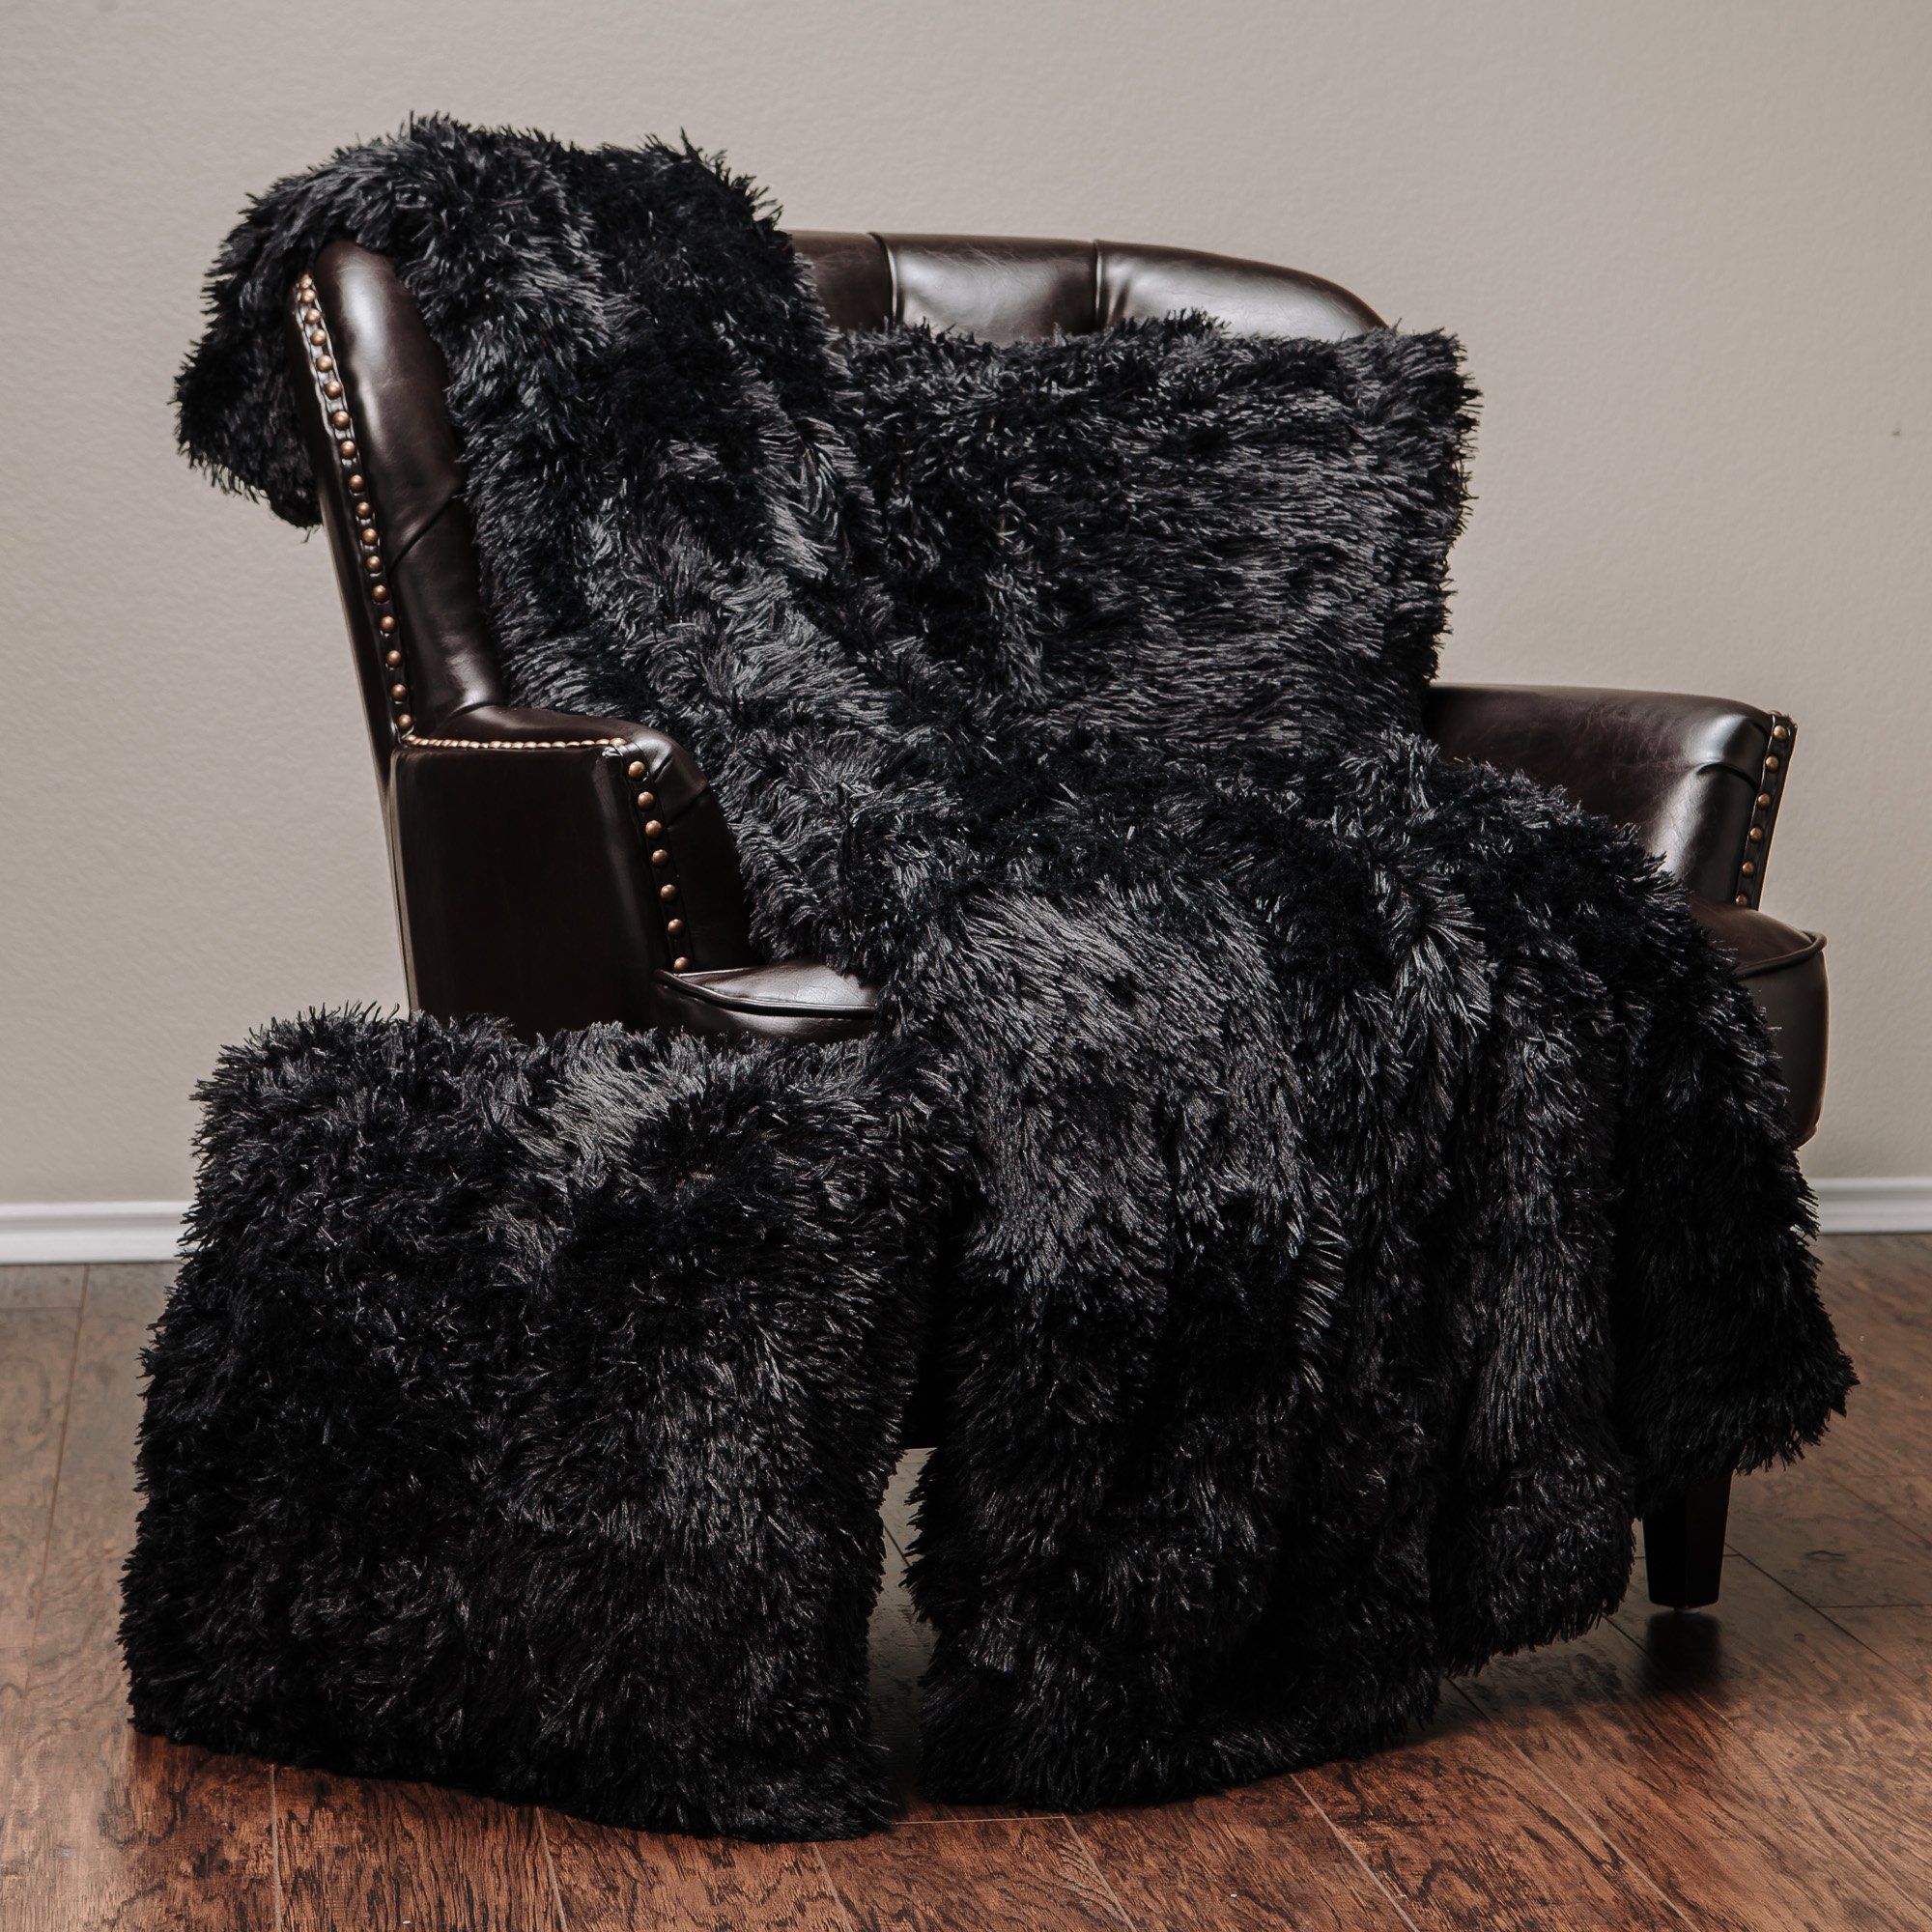 Chanasya 3-Piece Super Soft Shaggy Throw Blanket Pillow Cover Set - Chic Fuzzy Faux Fur Elegant Cozy Fleece Sherpa Throw (50''x65'')& Two Throw Pillow Covers (18''x 18'')- For Bed Couch Chair Sofa - Black